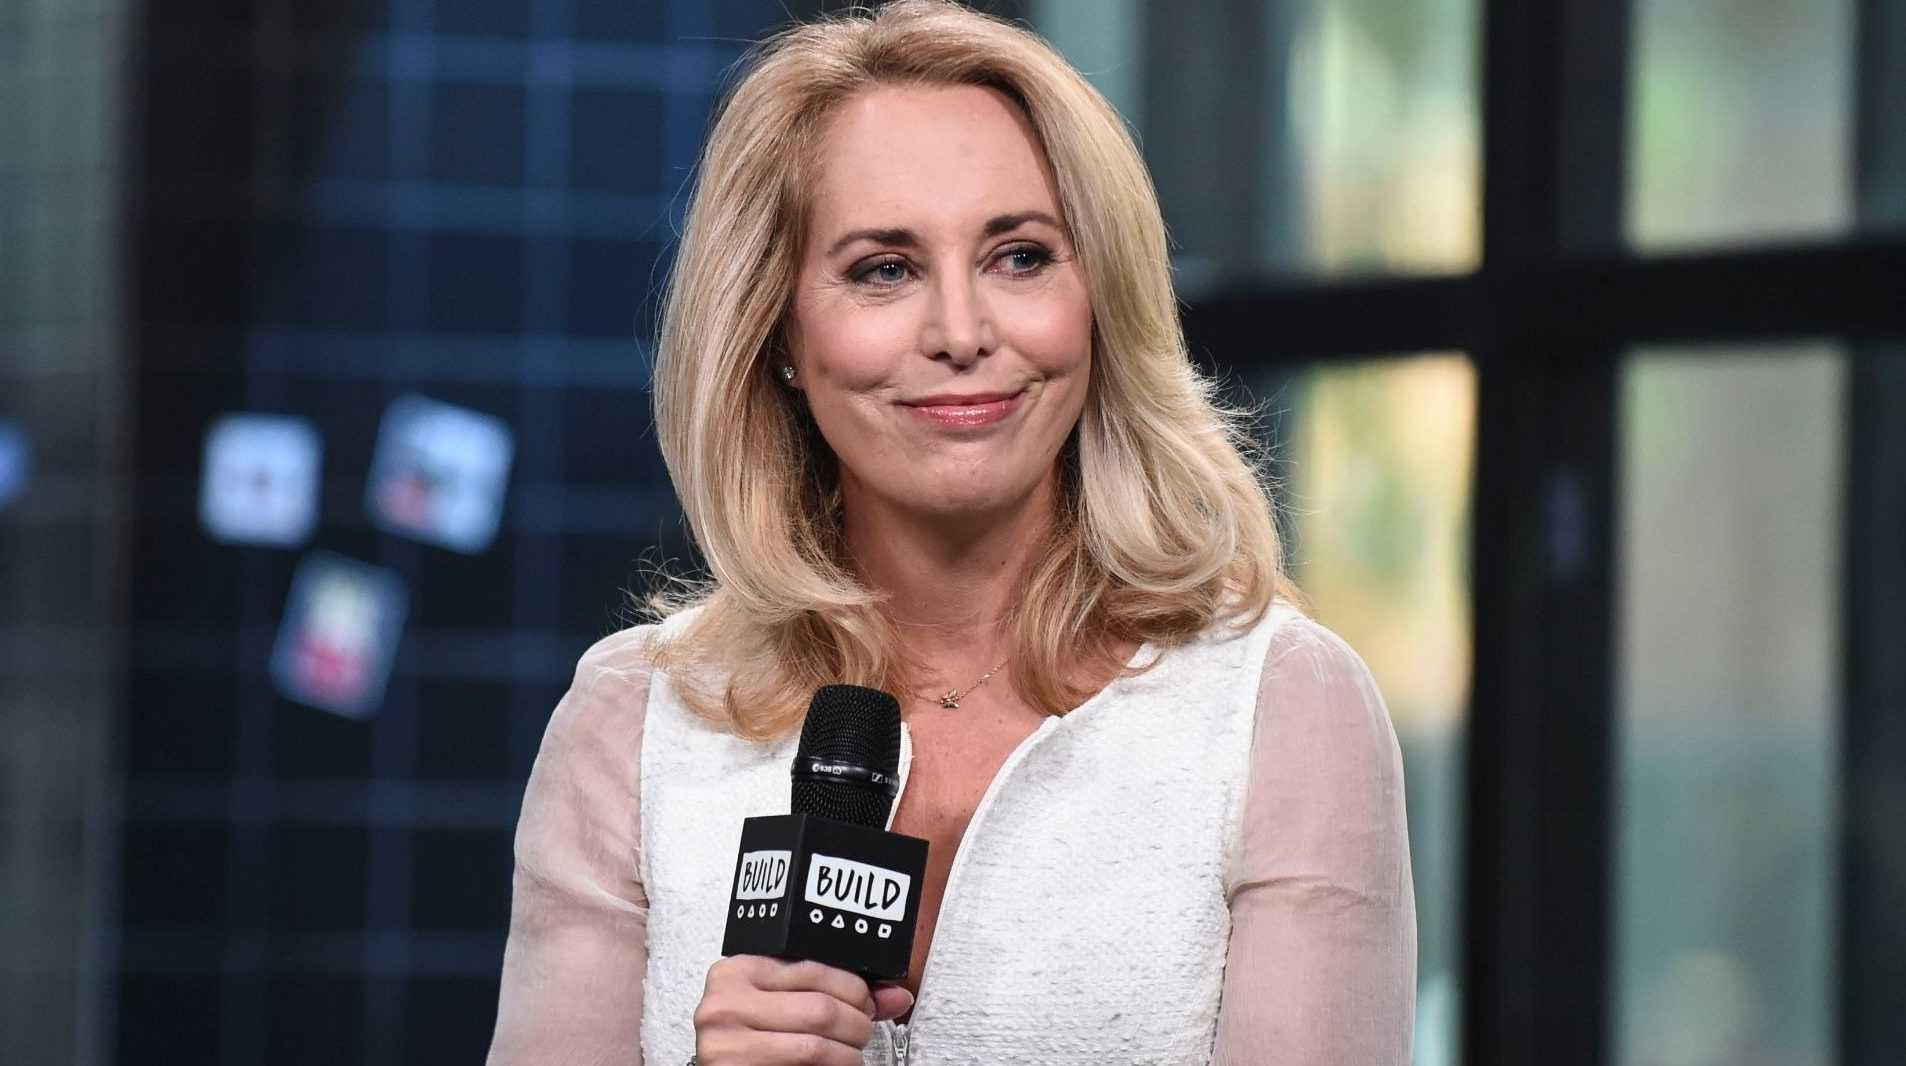 Valerie Plame Career